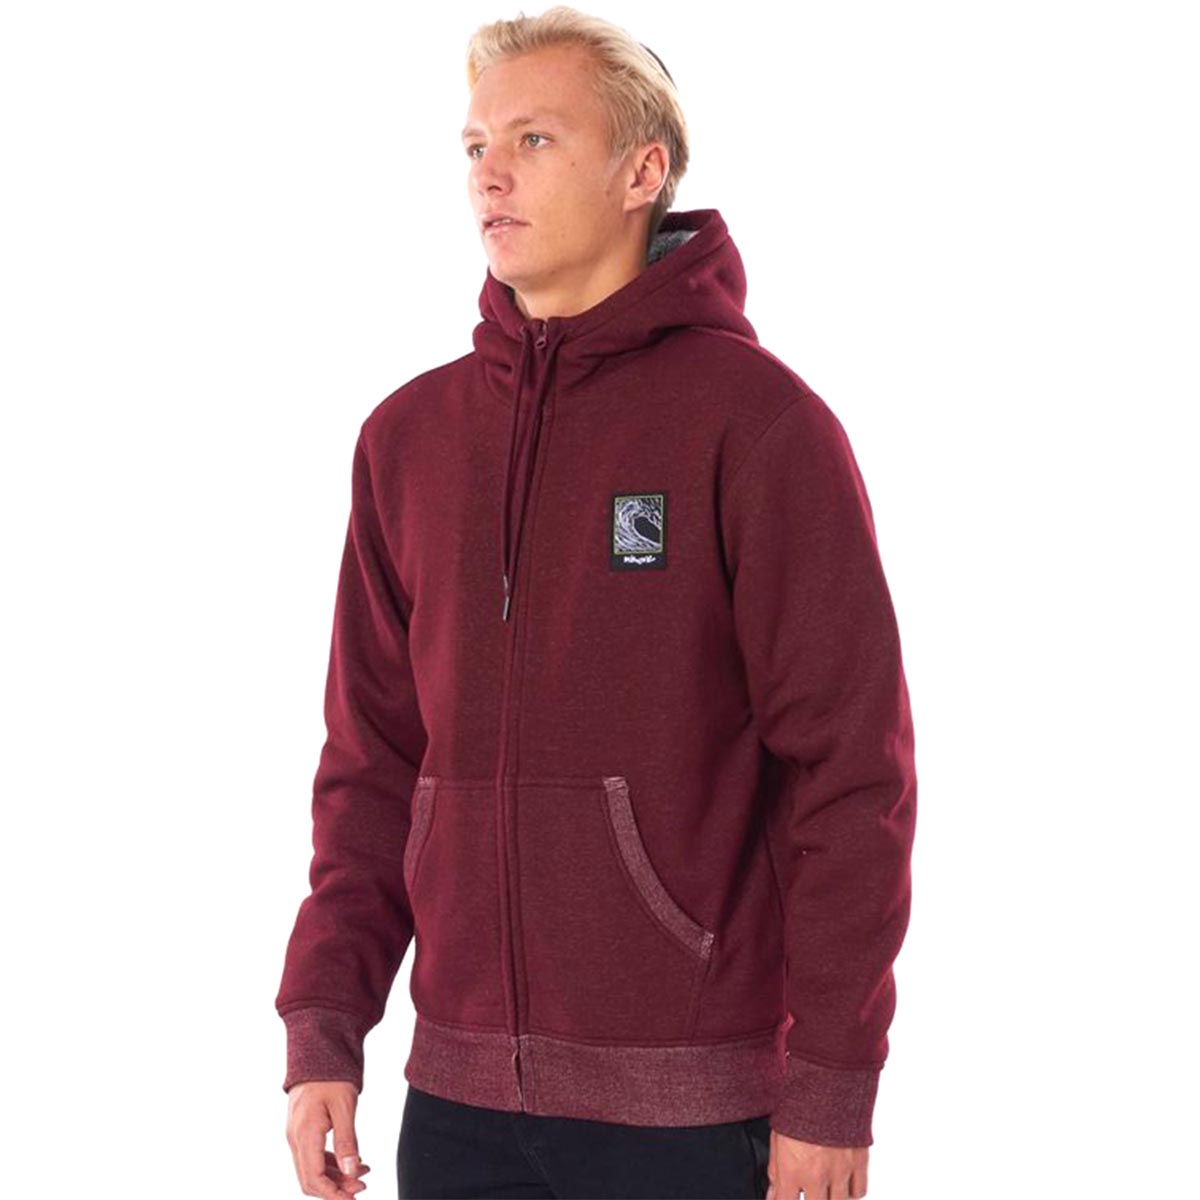 RIPCURL - AGILE LINED FLEECE FULL ZIP HOODIE